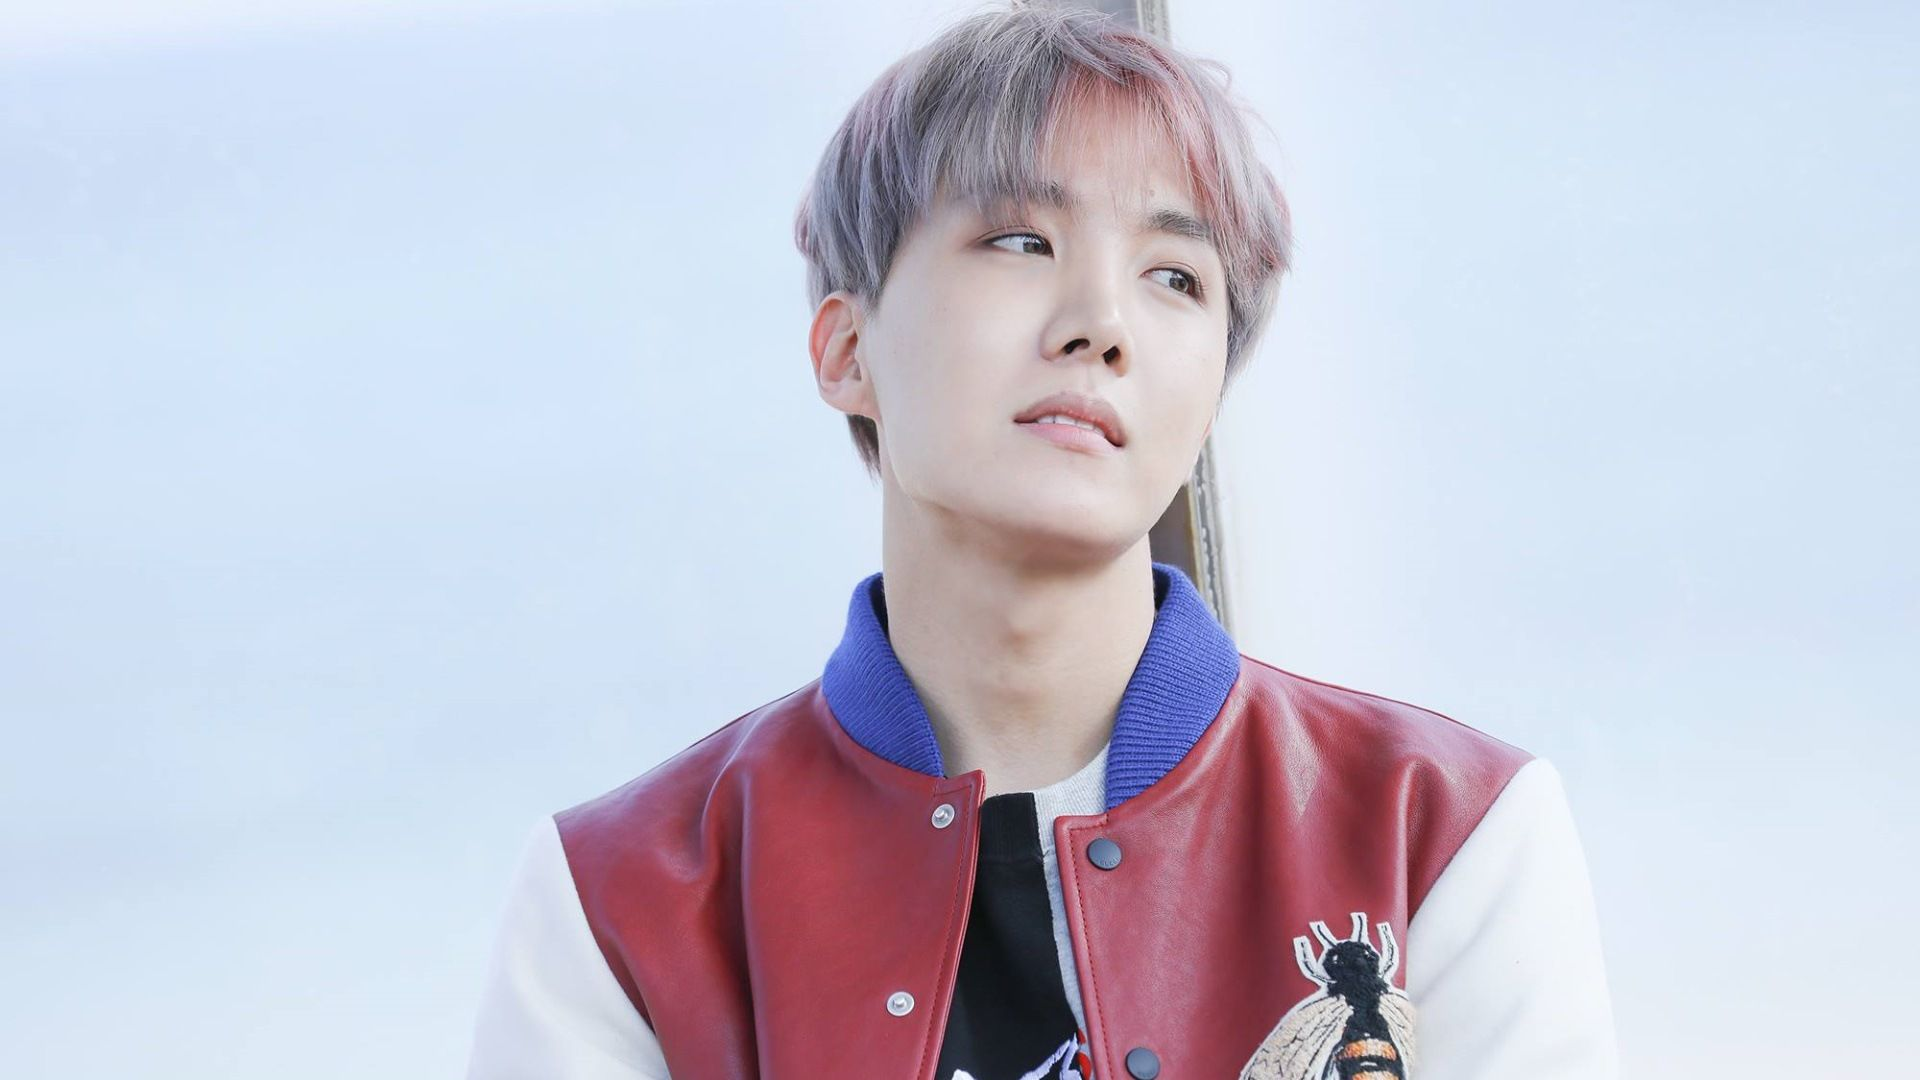 Bts Jhope Wallpapers Top Free Bts Jhope Backgrounds Wallpaperaccess